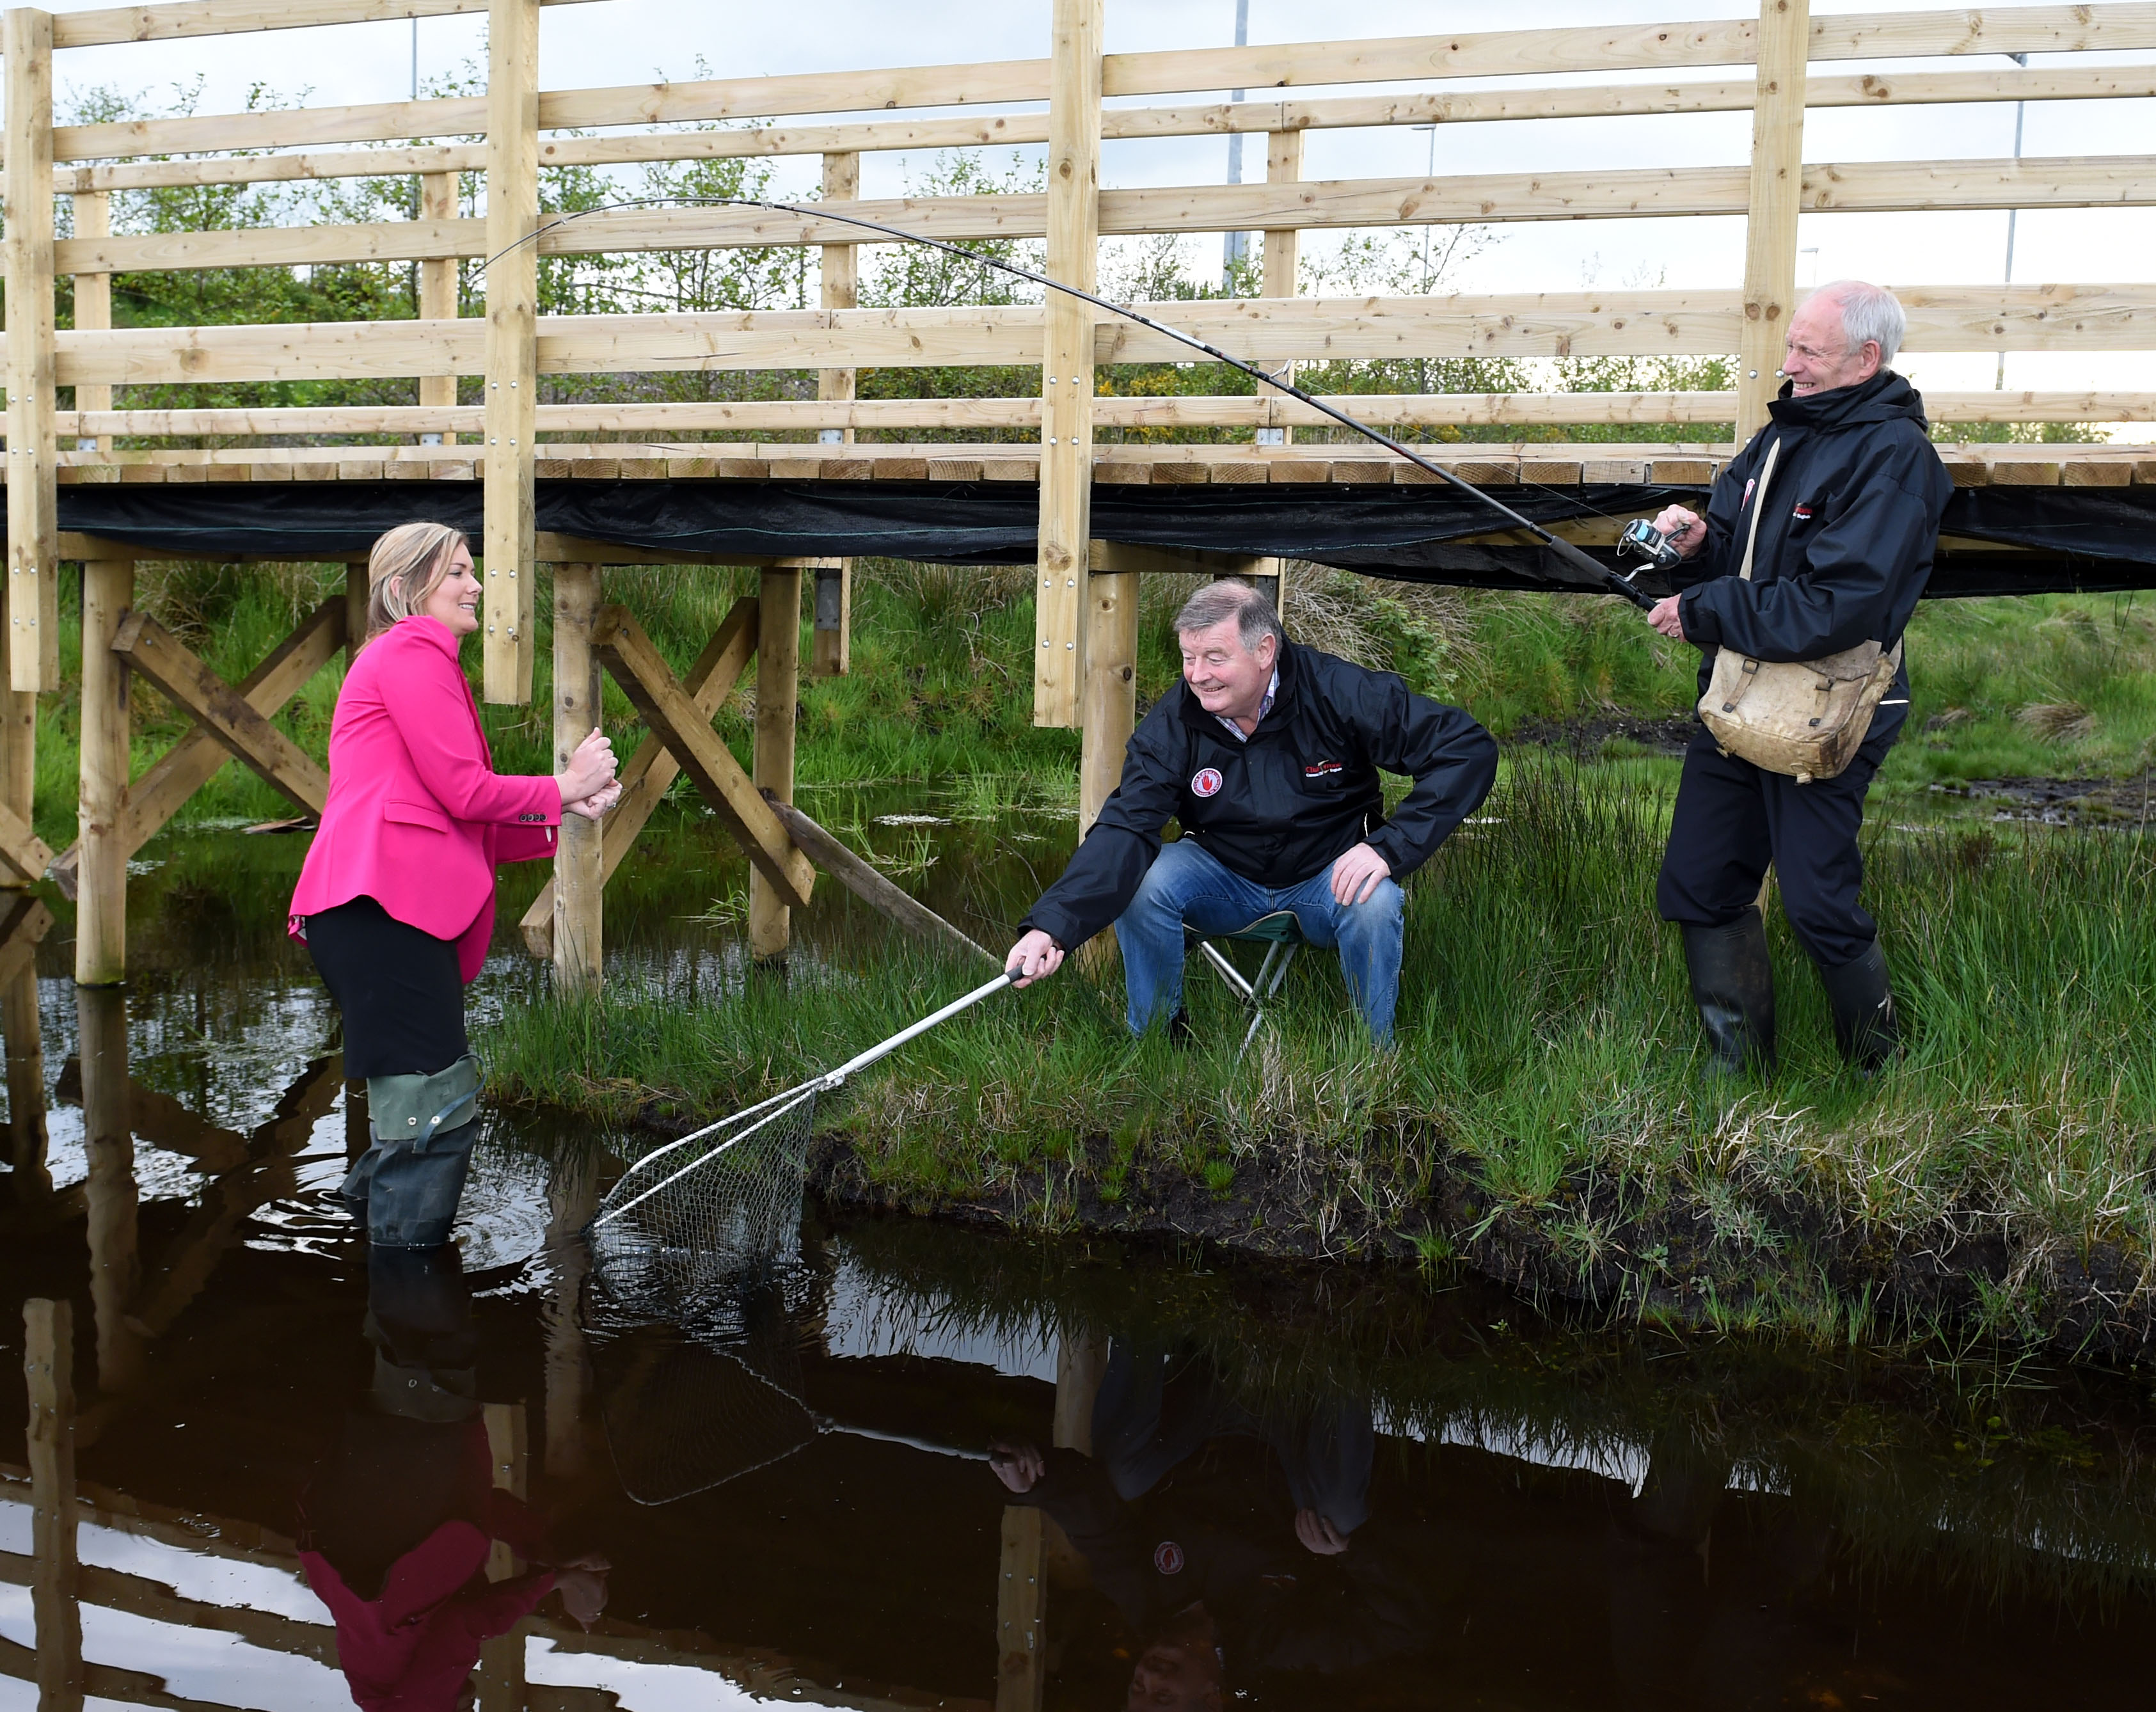 CLUB TYRONE CASTS ITS NET